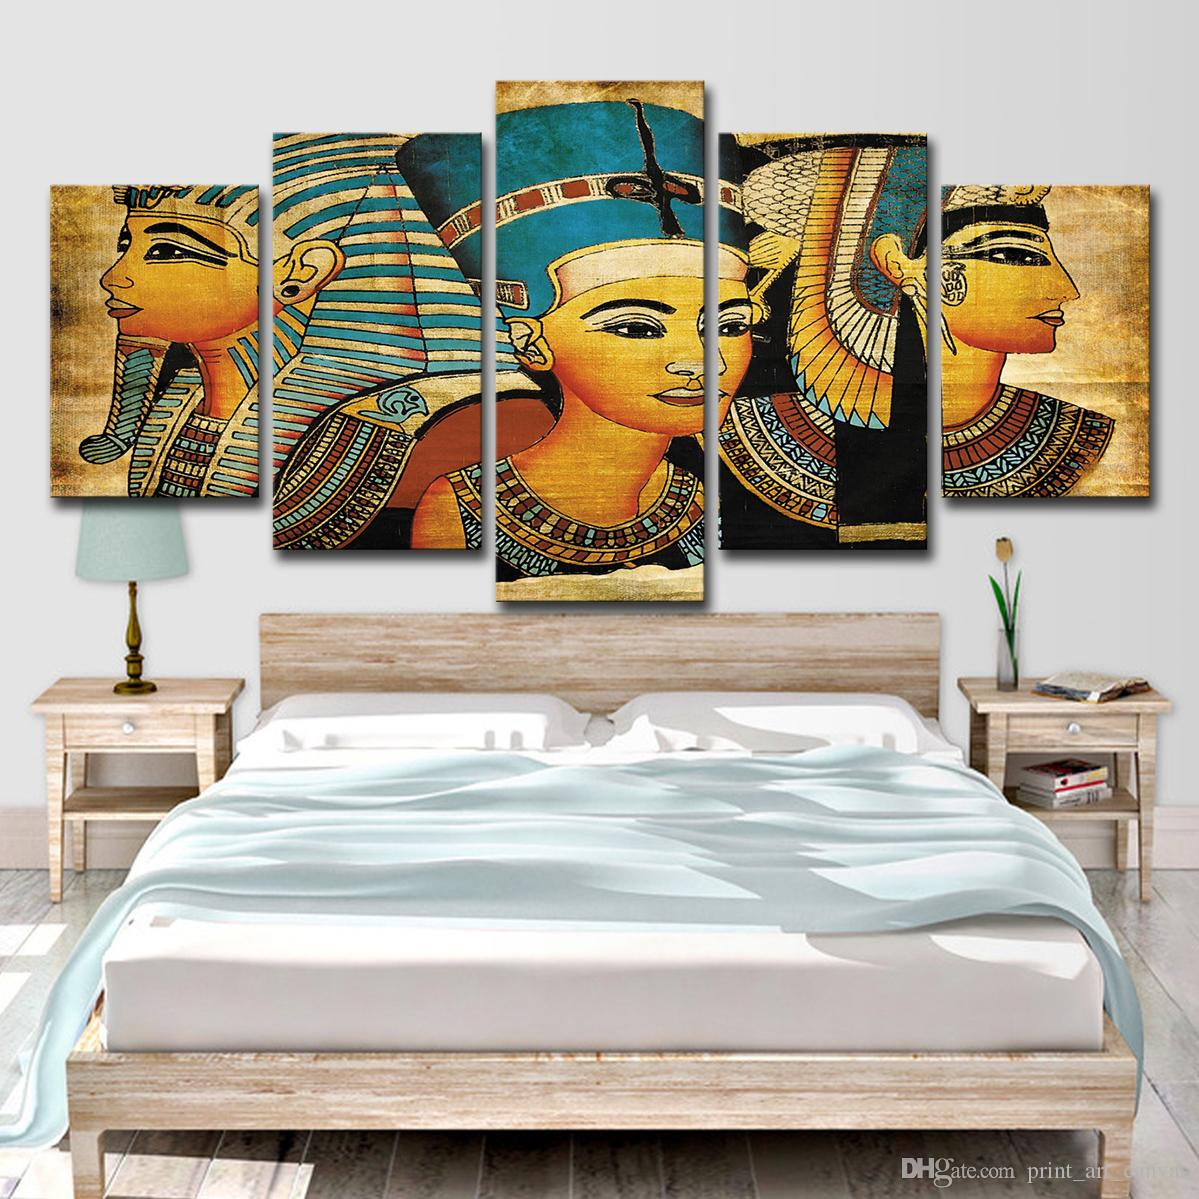 2020 Pharaoh Of Egypt Home Decoration Paintings Modern Abstract Wall Painting Wall Art Picture Unframed From Print Art Canvas 13 95 Dhgate Com,Studio Apartment Design